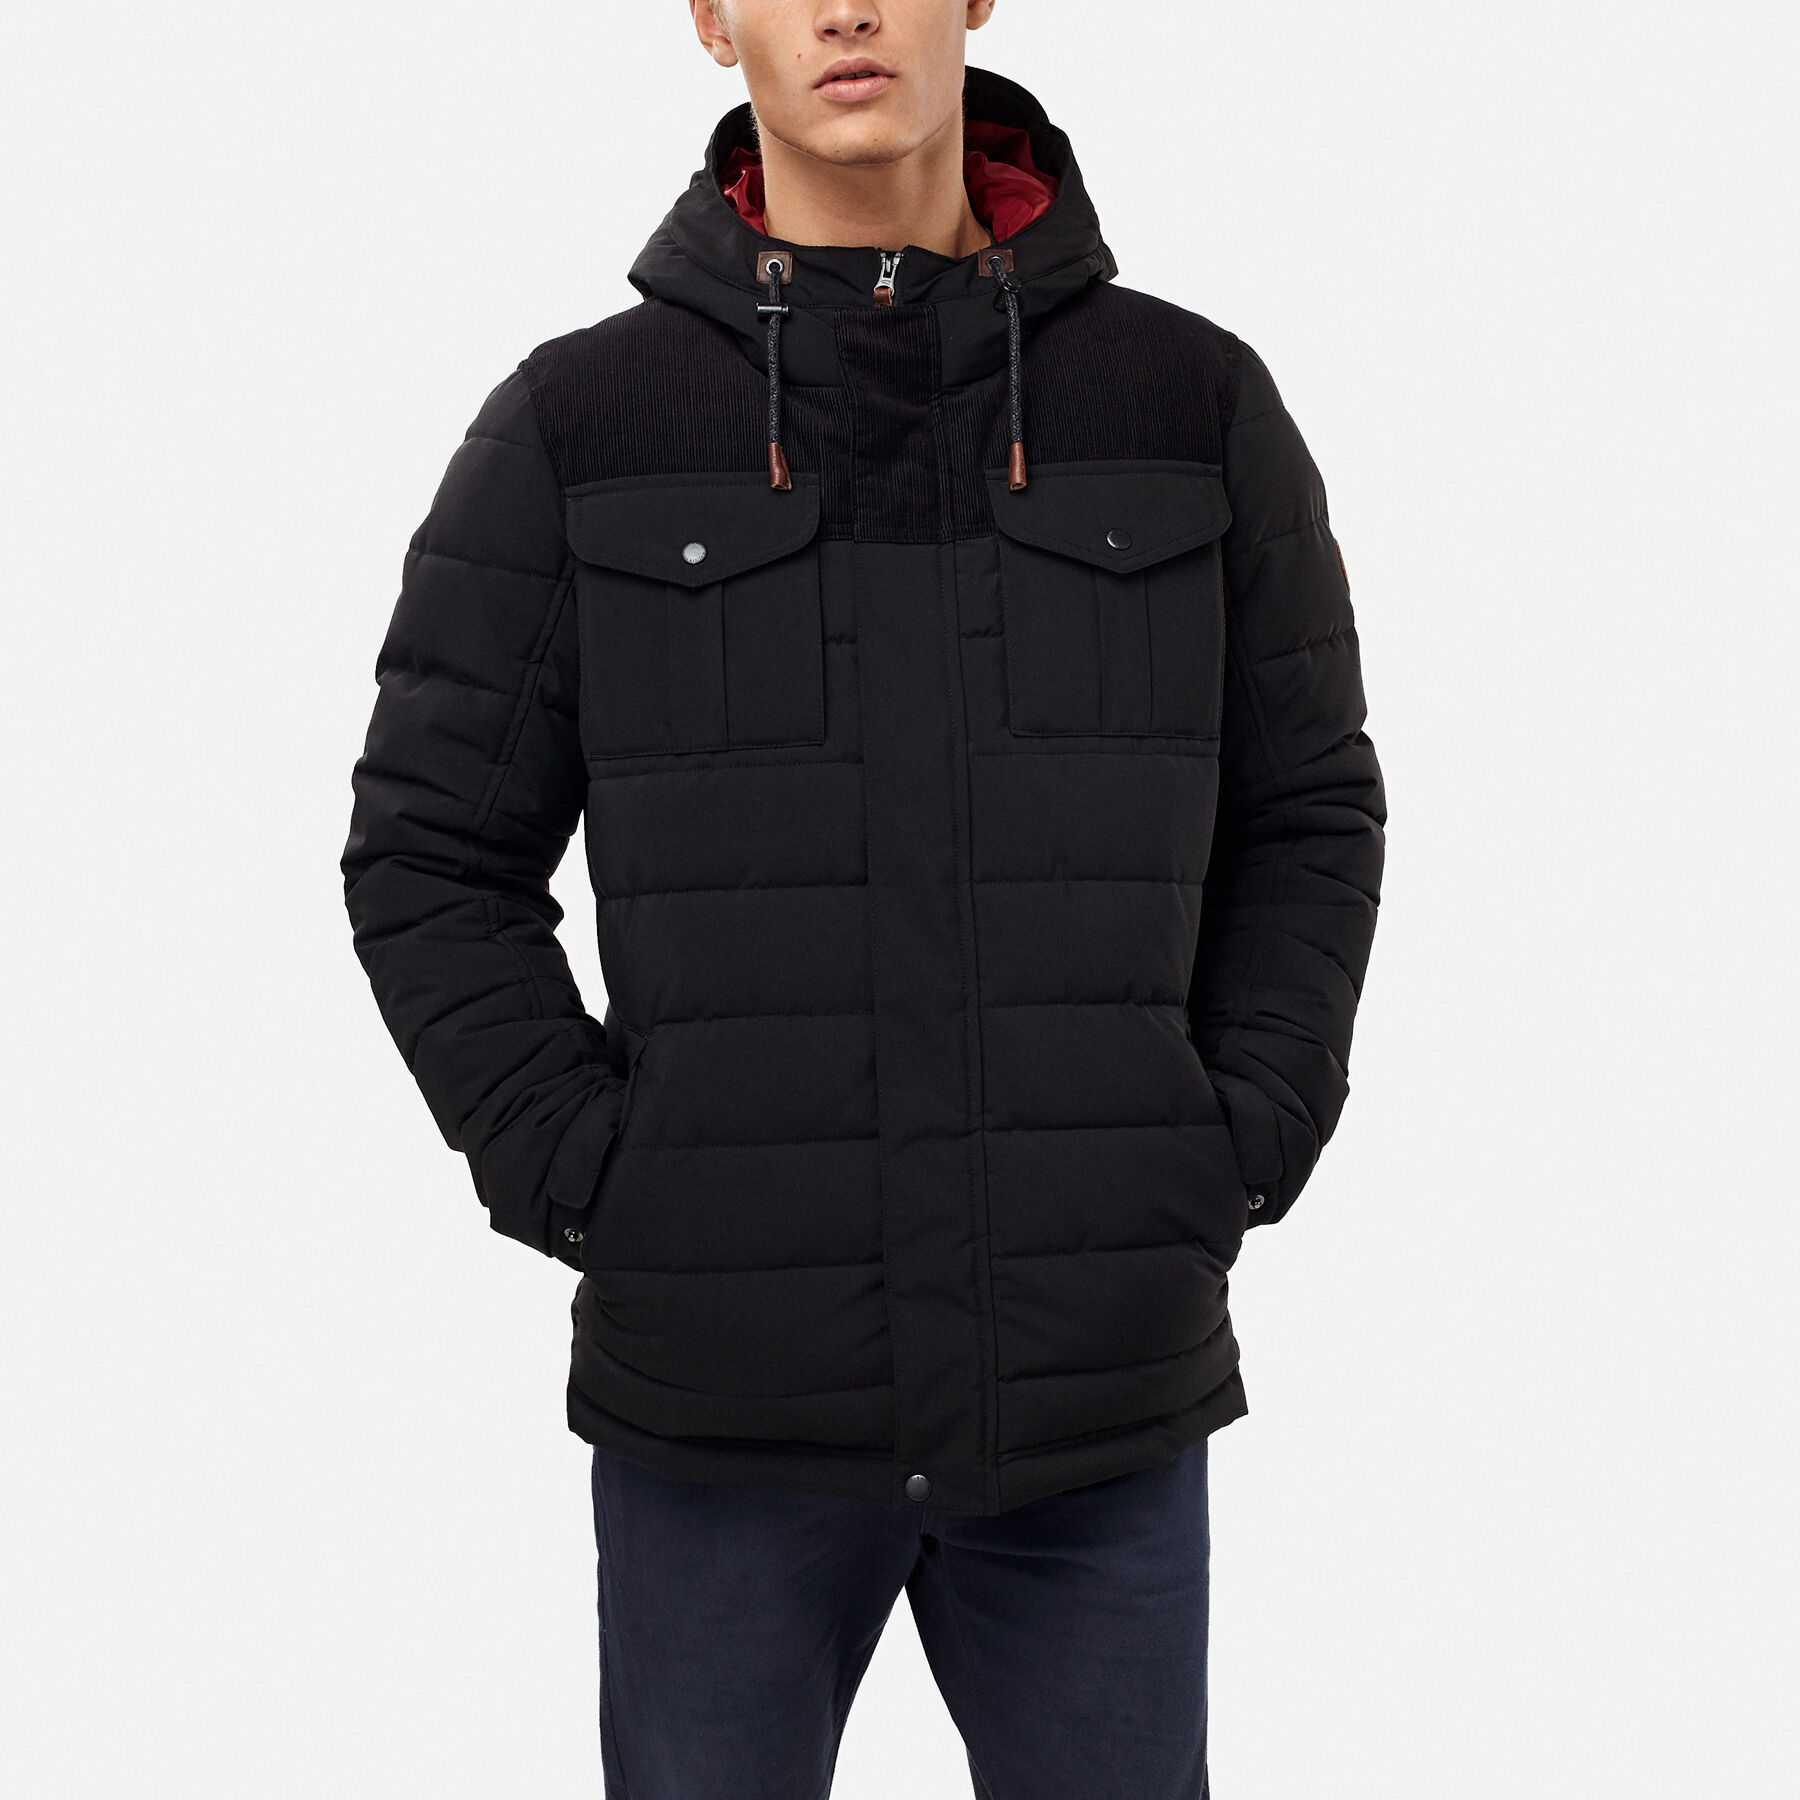 O'neill adv charger mens jacket